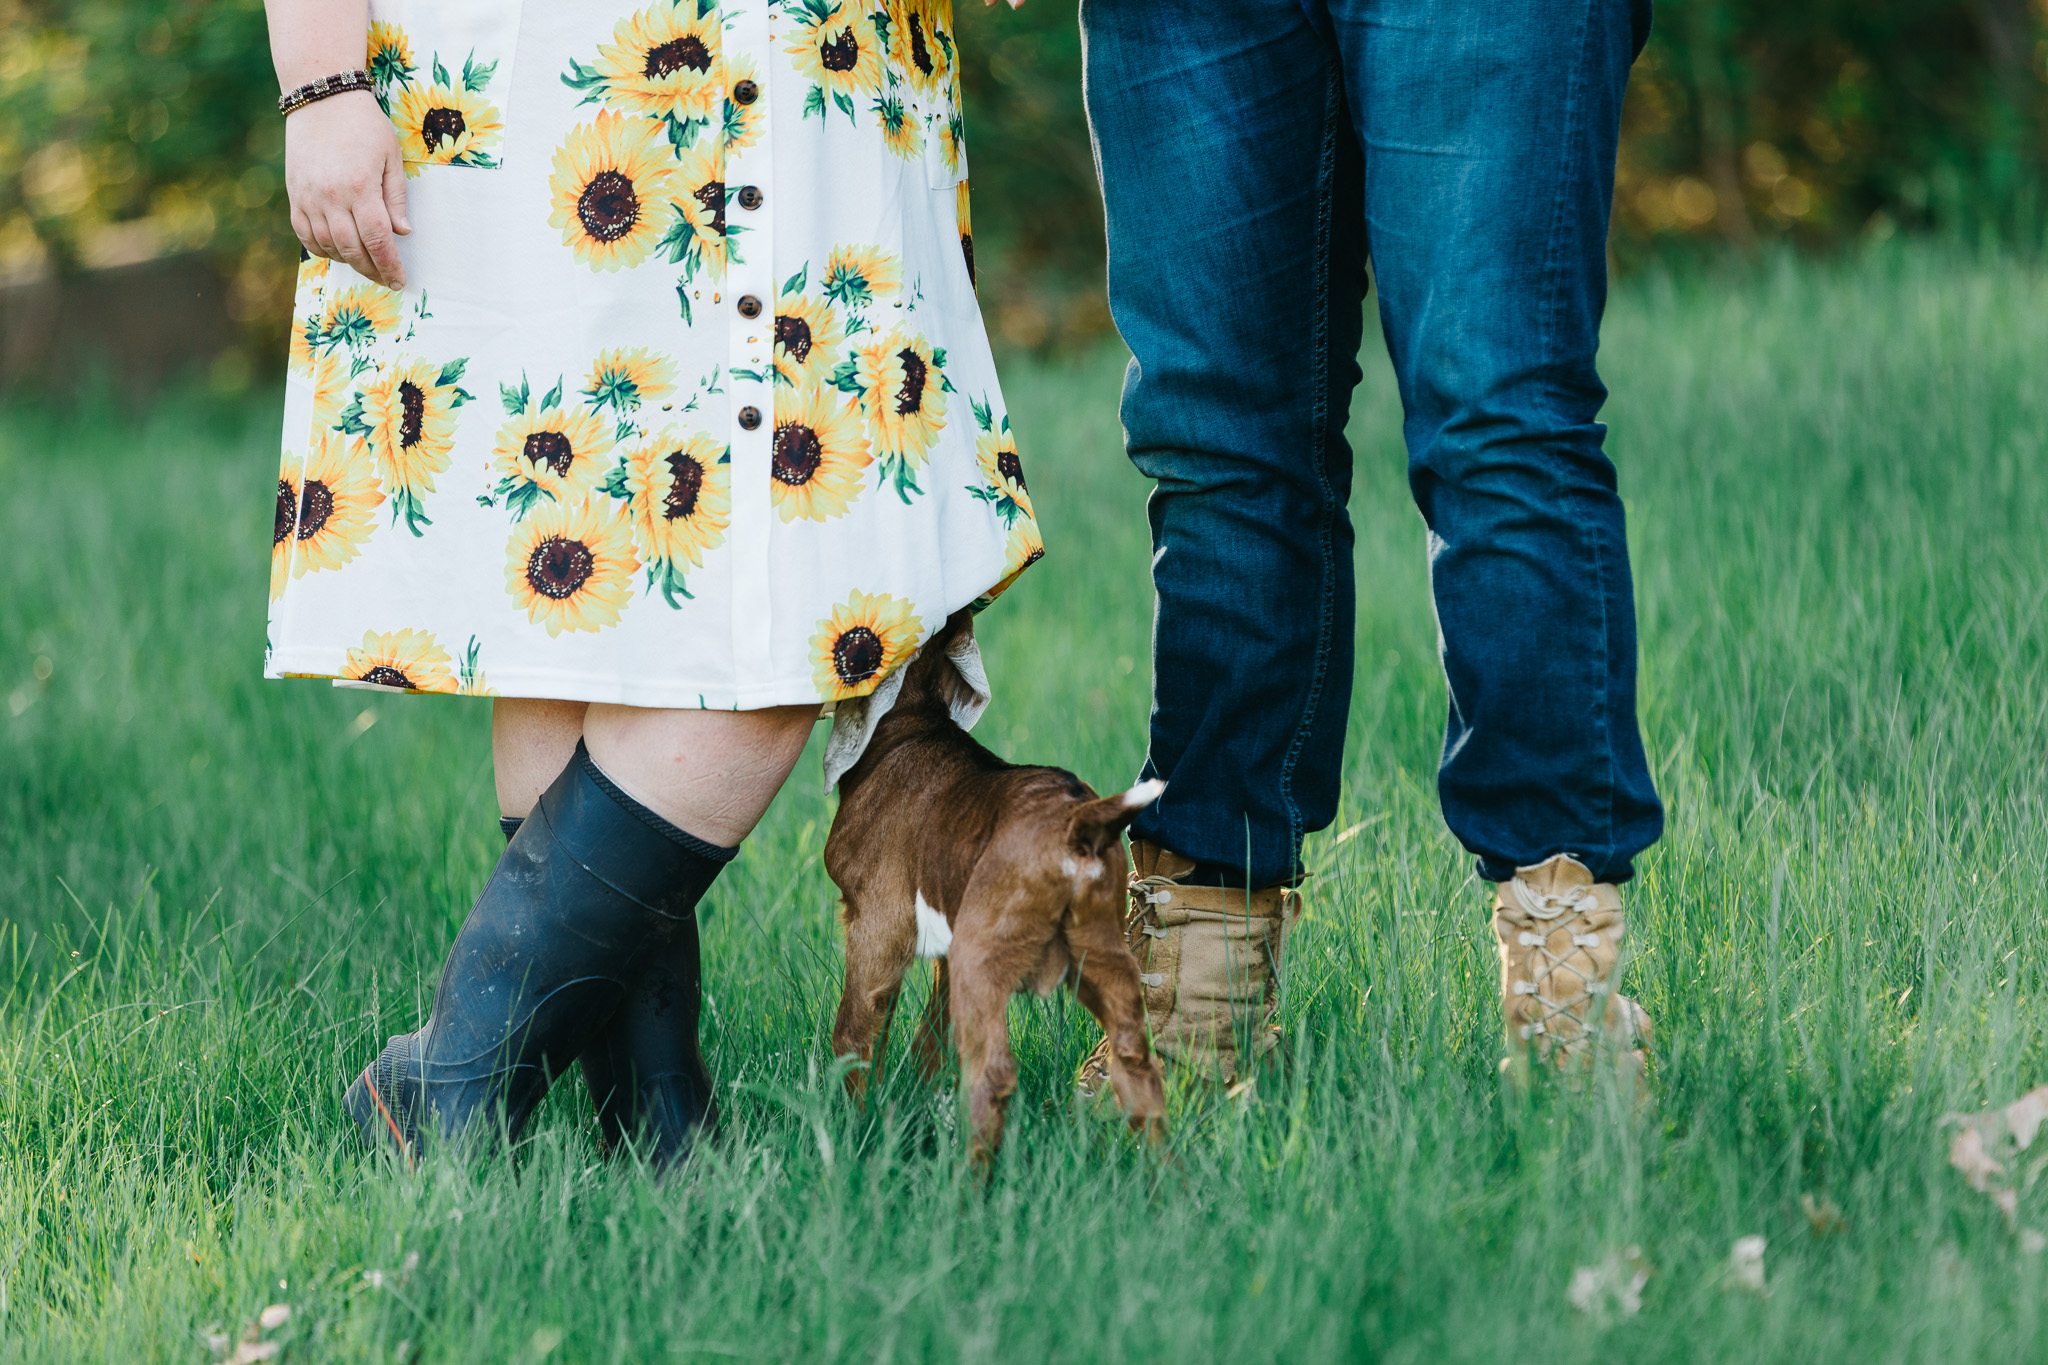 Baby goat nibbling on the dress during an engagement session on a farm.